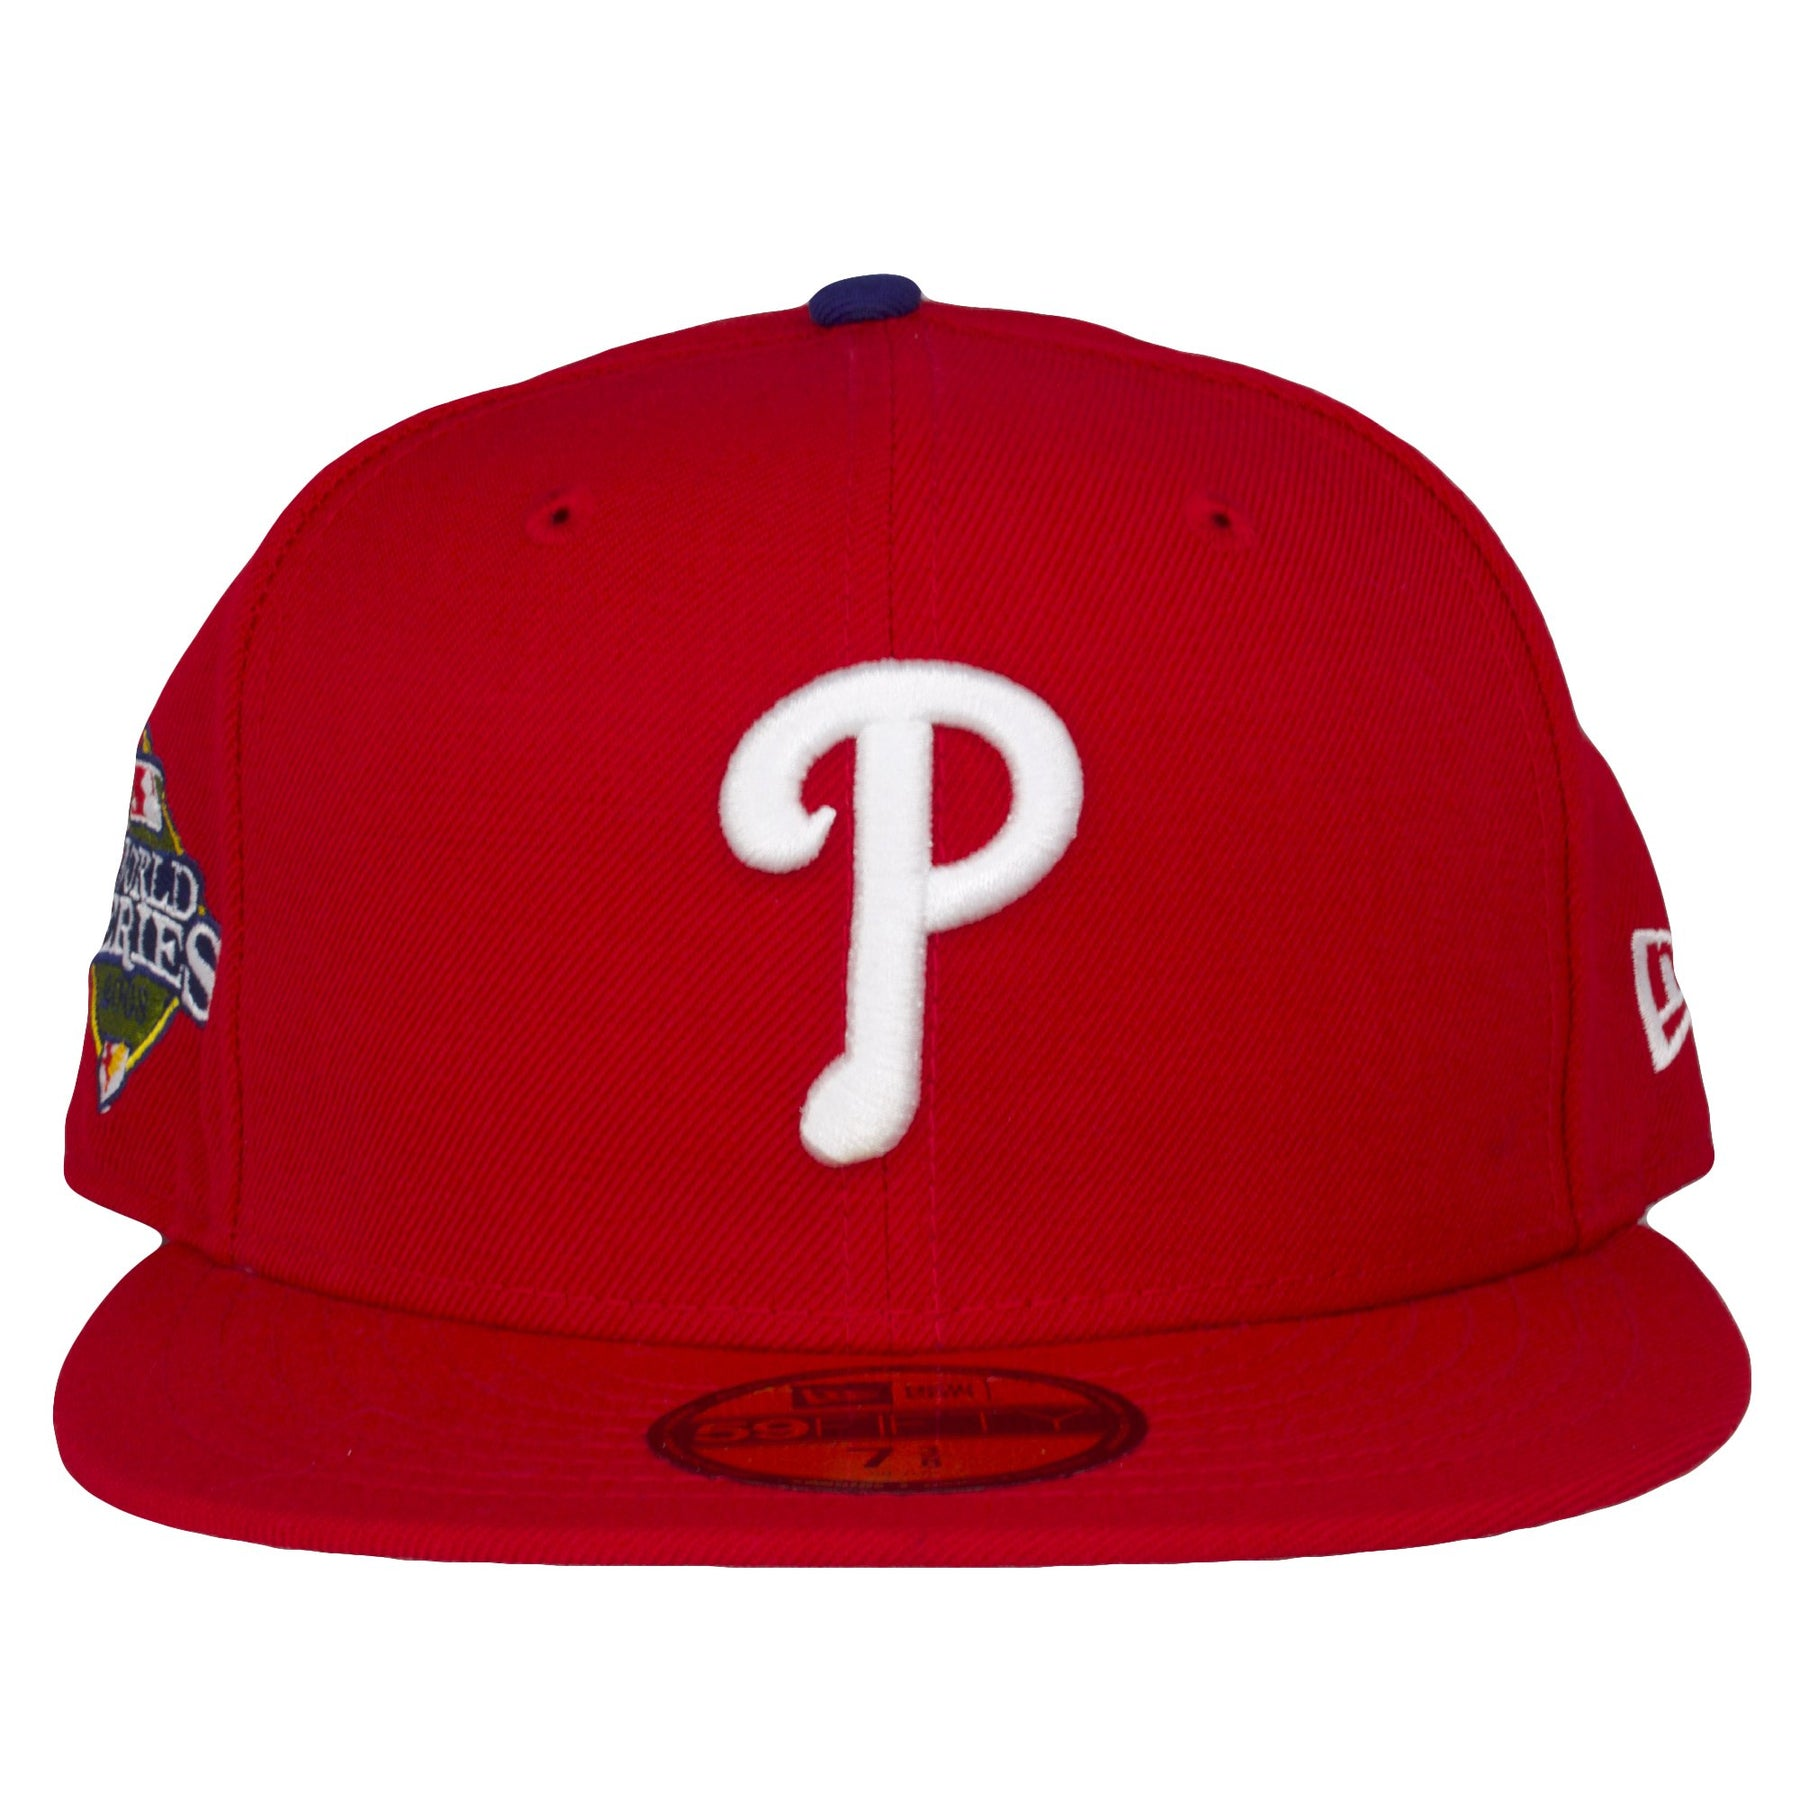 brand new 76fd6 1f302 on the front of the 2008 world series philadelphia phillies fitted cap is  the white phillies